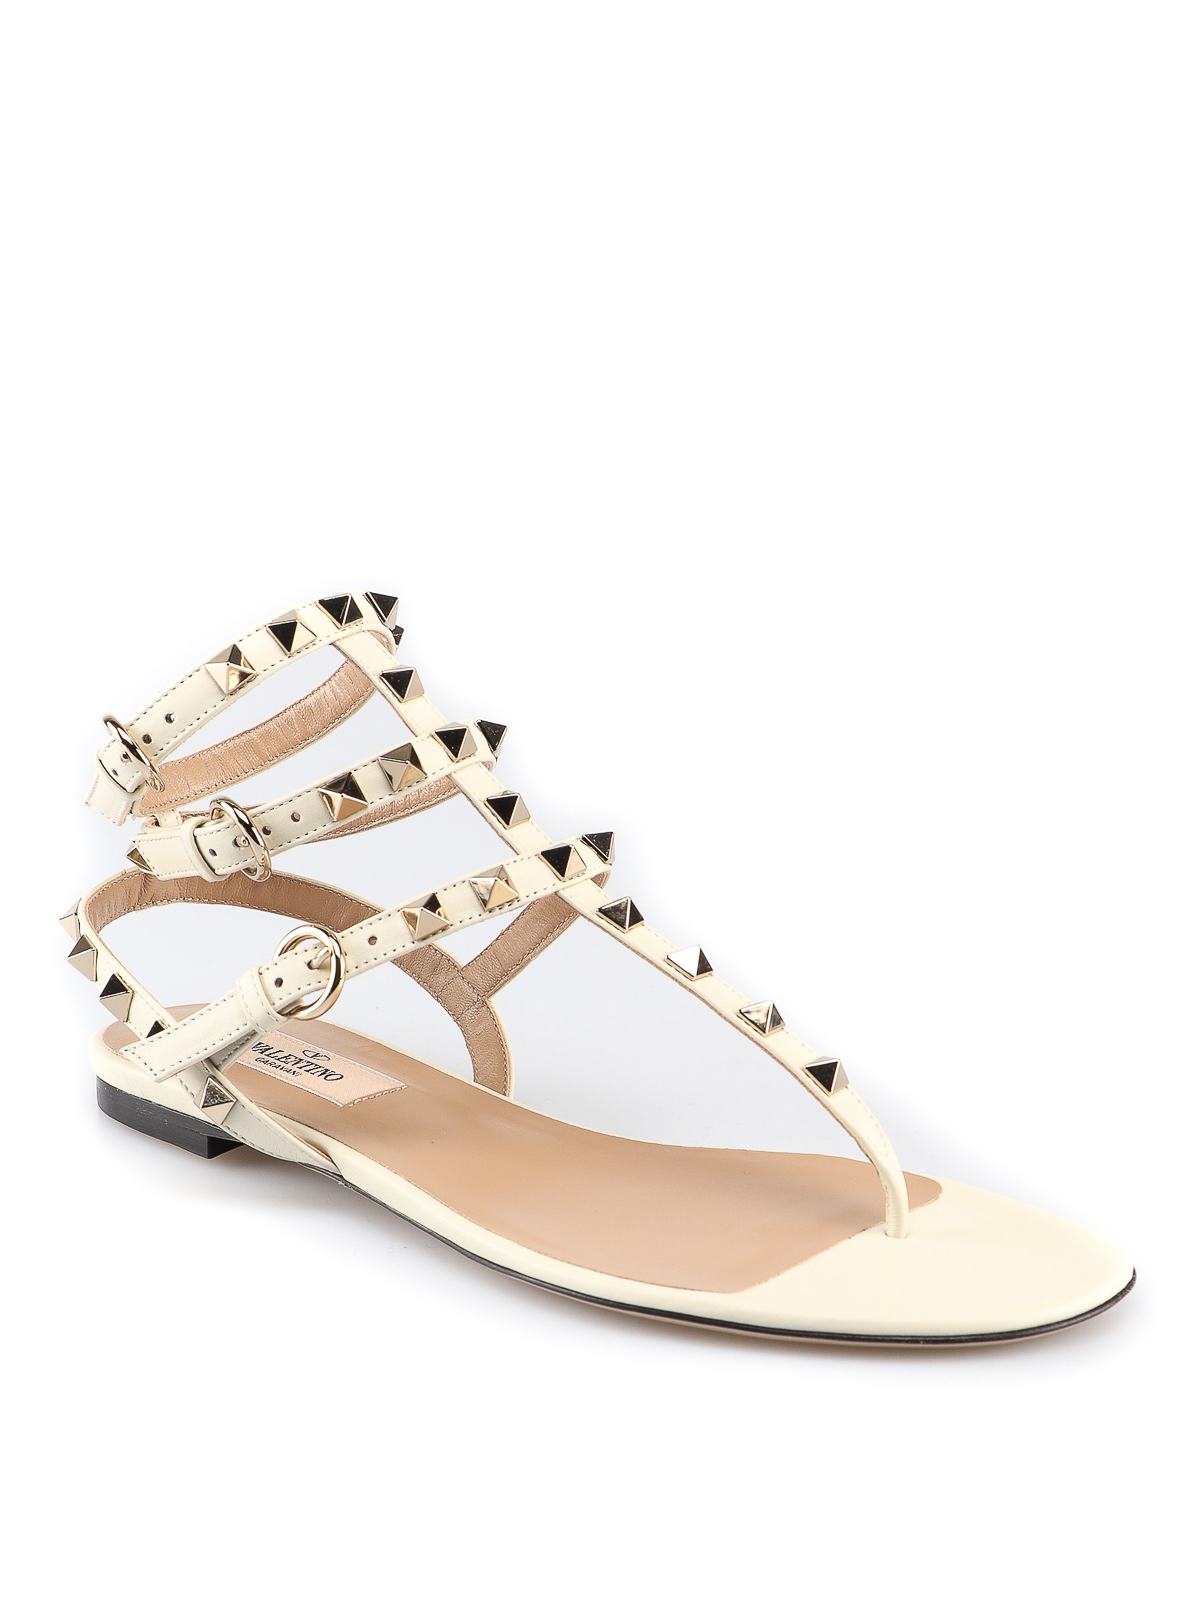 001f5b9ad VALENTINO GARAVANI  sandals online - Rockstud white leather thong sandals